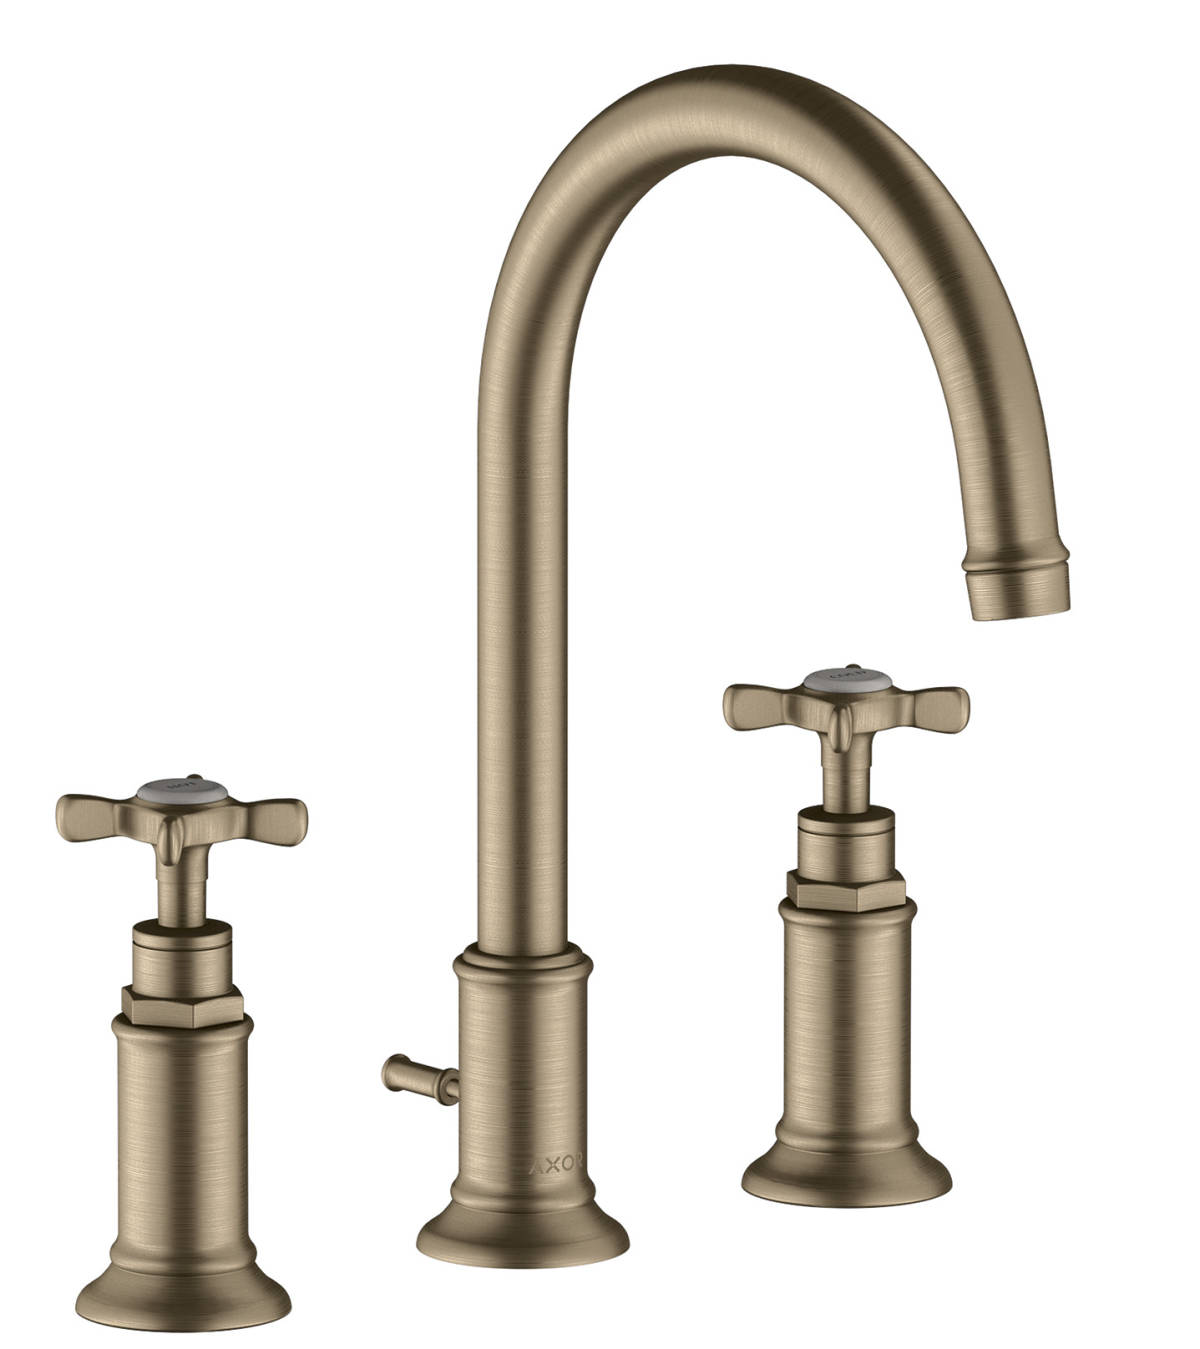 3-hole basin mixer 180 with cross handles and pop-up waste set, Brushed Nickel, 16513820